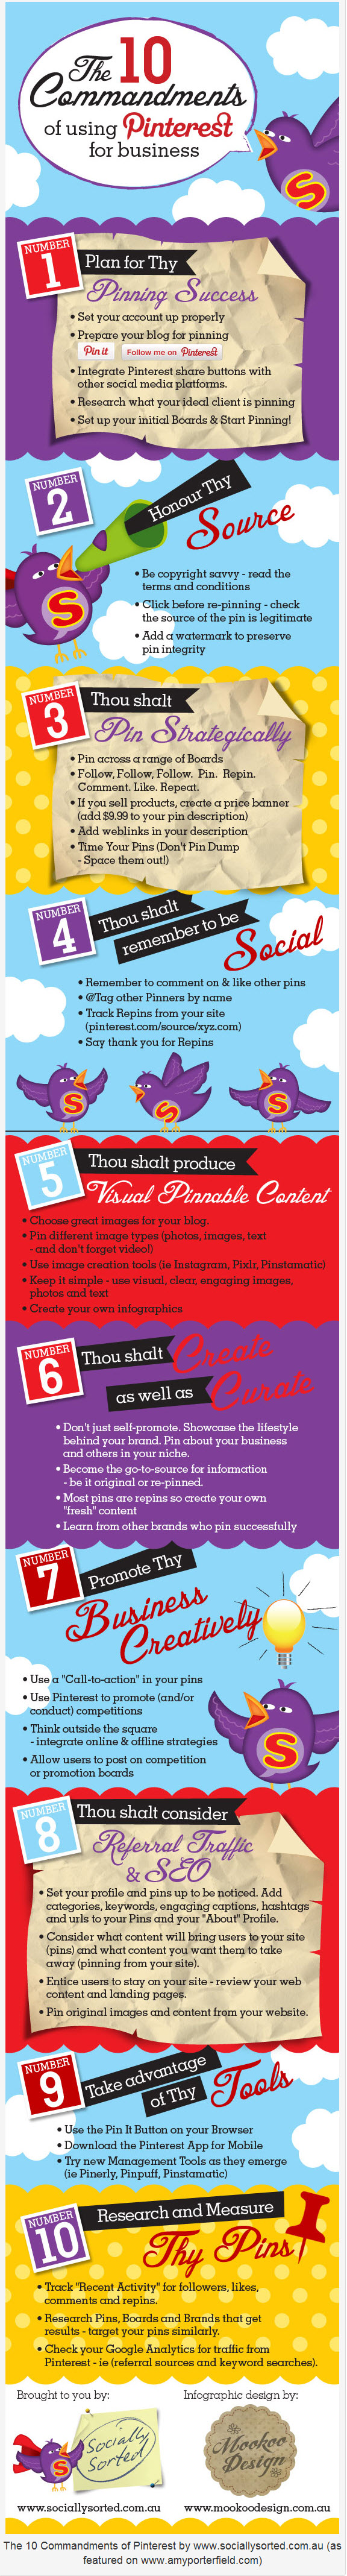 10 Top Tips for Marketing your Business on Pinterest infographic 10 Tips for Marketing your Business on Pinterest